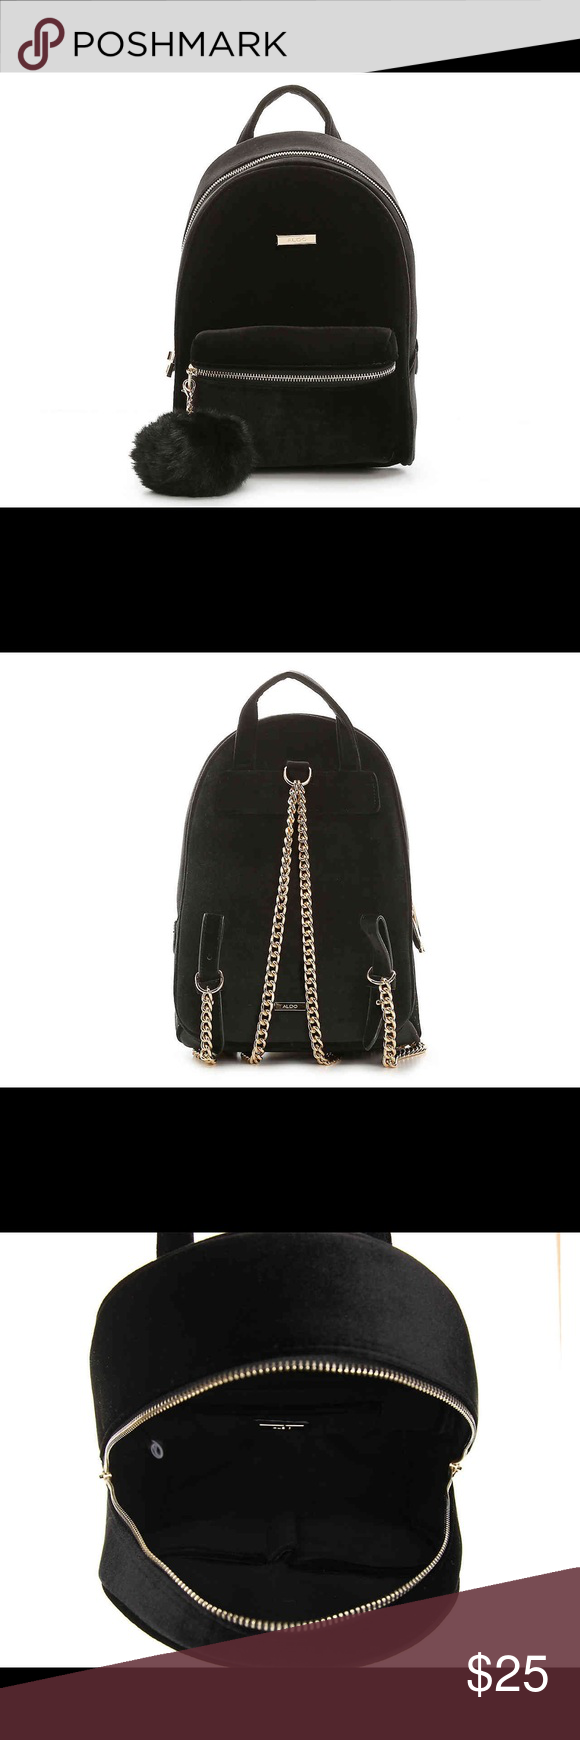 a4cccfc88c9 Aldo Pobbio Mini Velvet Black Backpack Get the perfect stylish backpack to  carry you through your